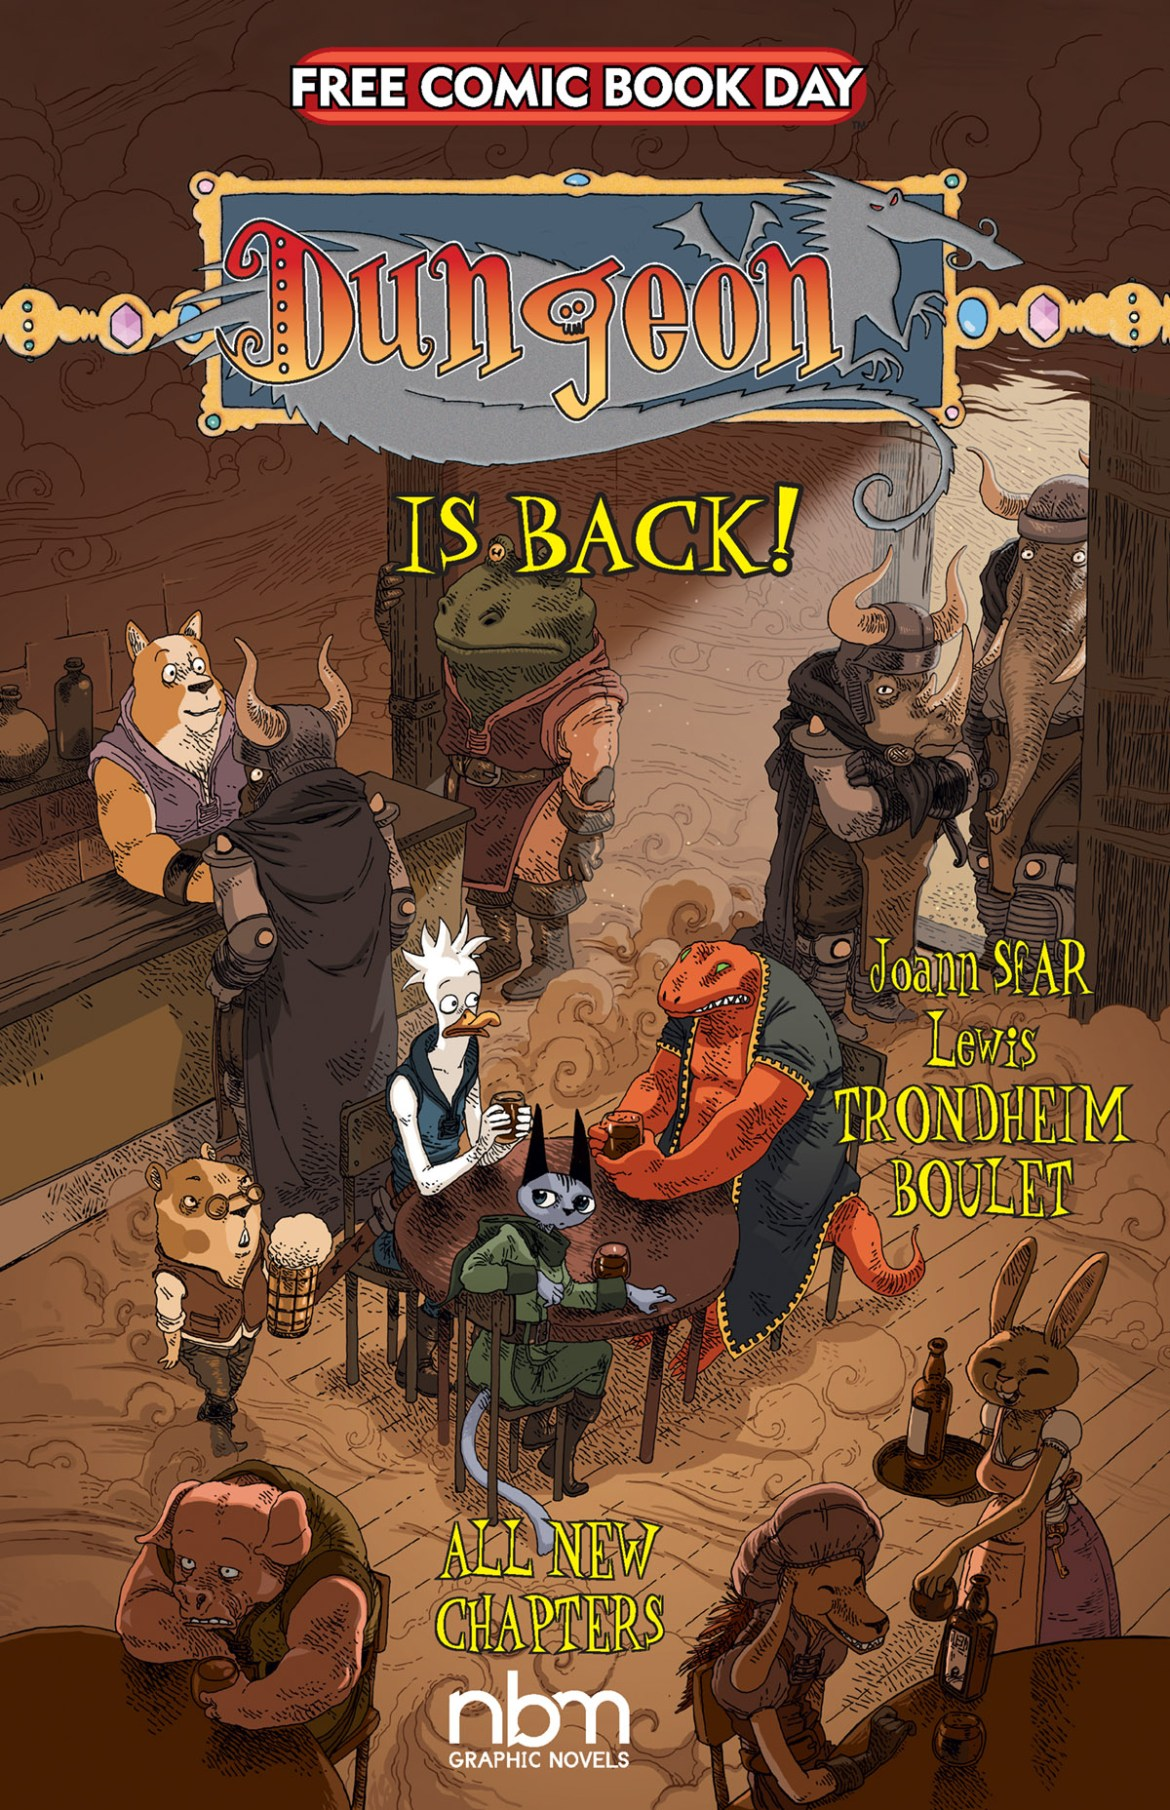 FCBD21_SILVER_NBM-Pub_Dungeon-Relaunch Complete Free Comic Book Day 2021 comic book line-up announced